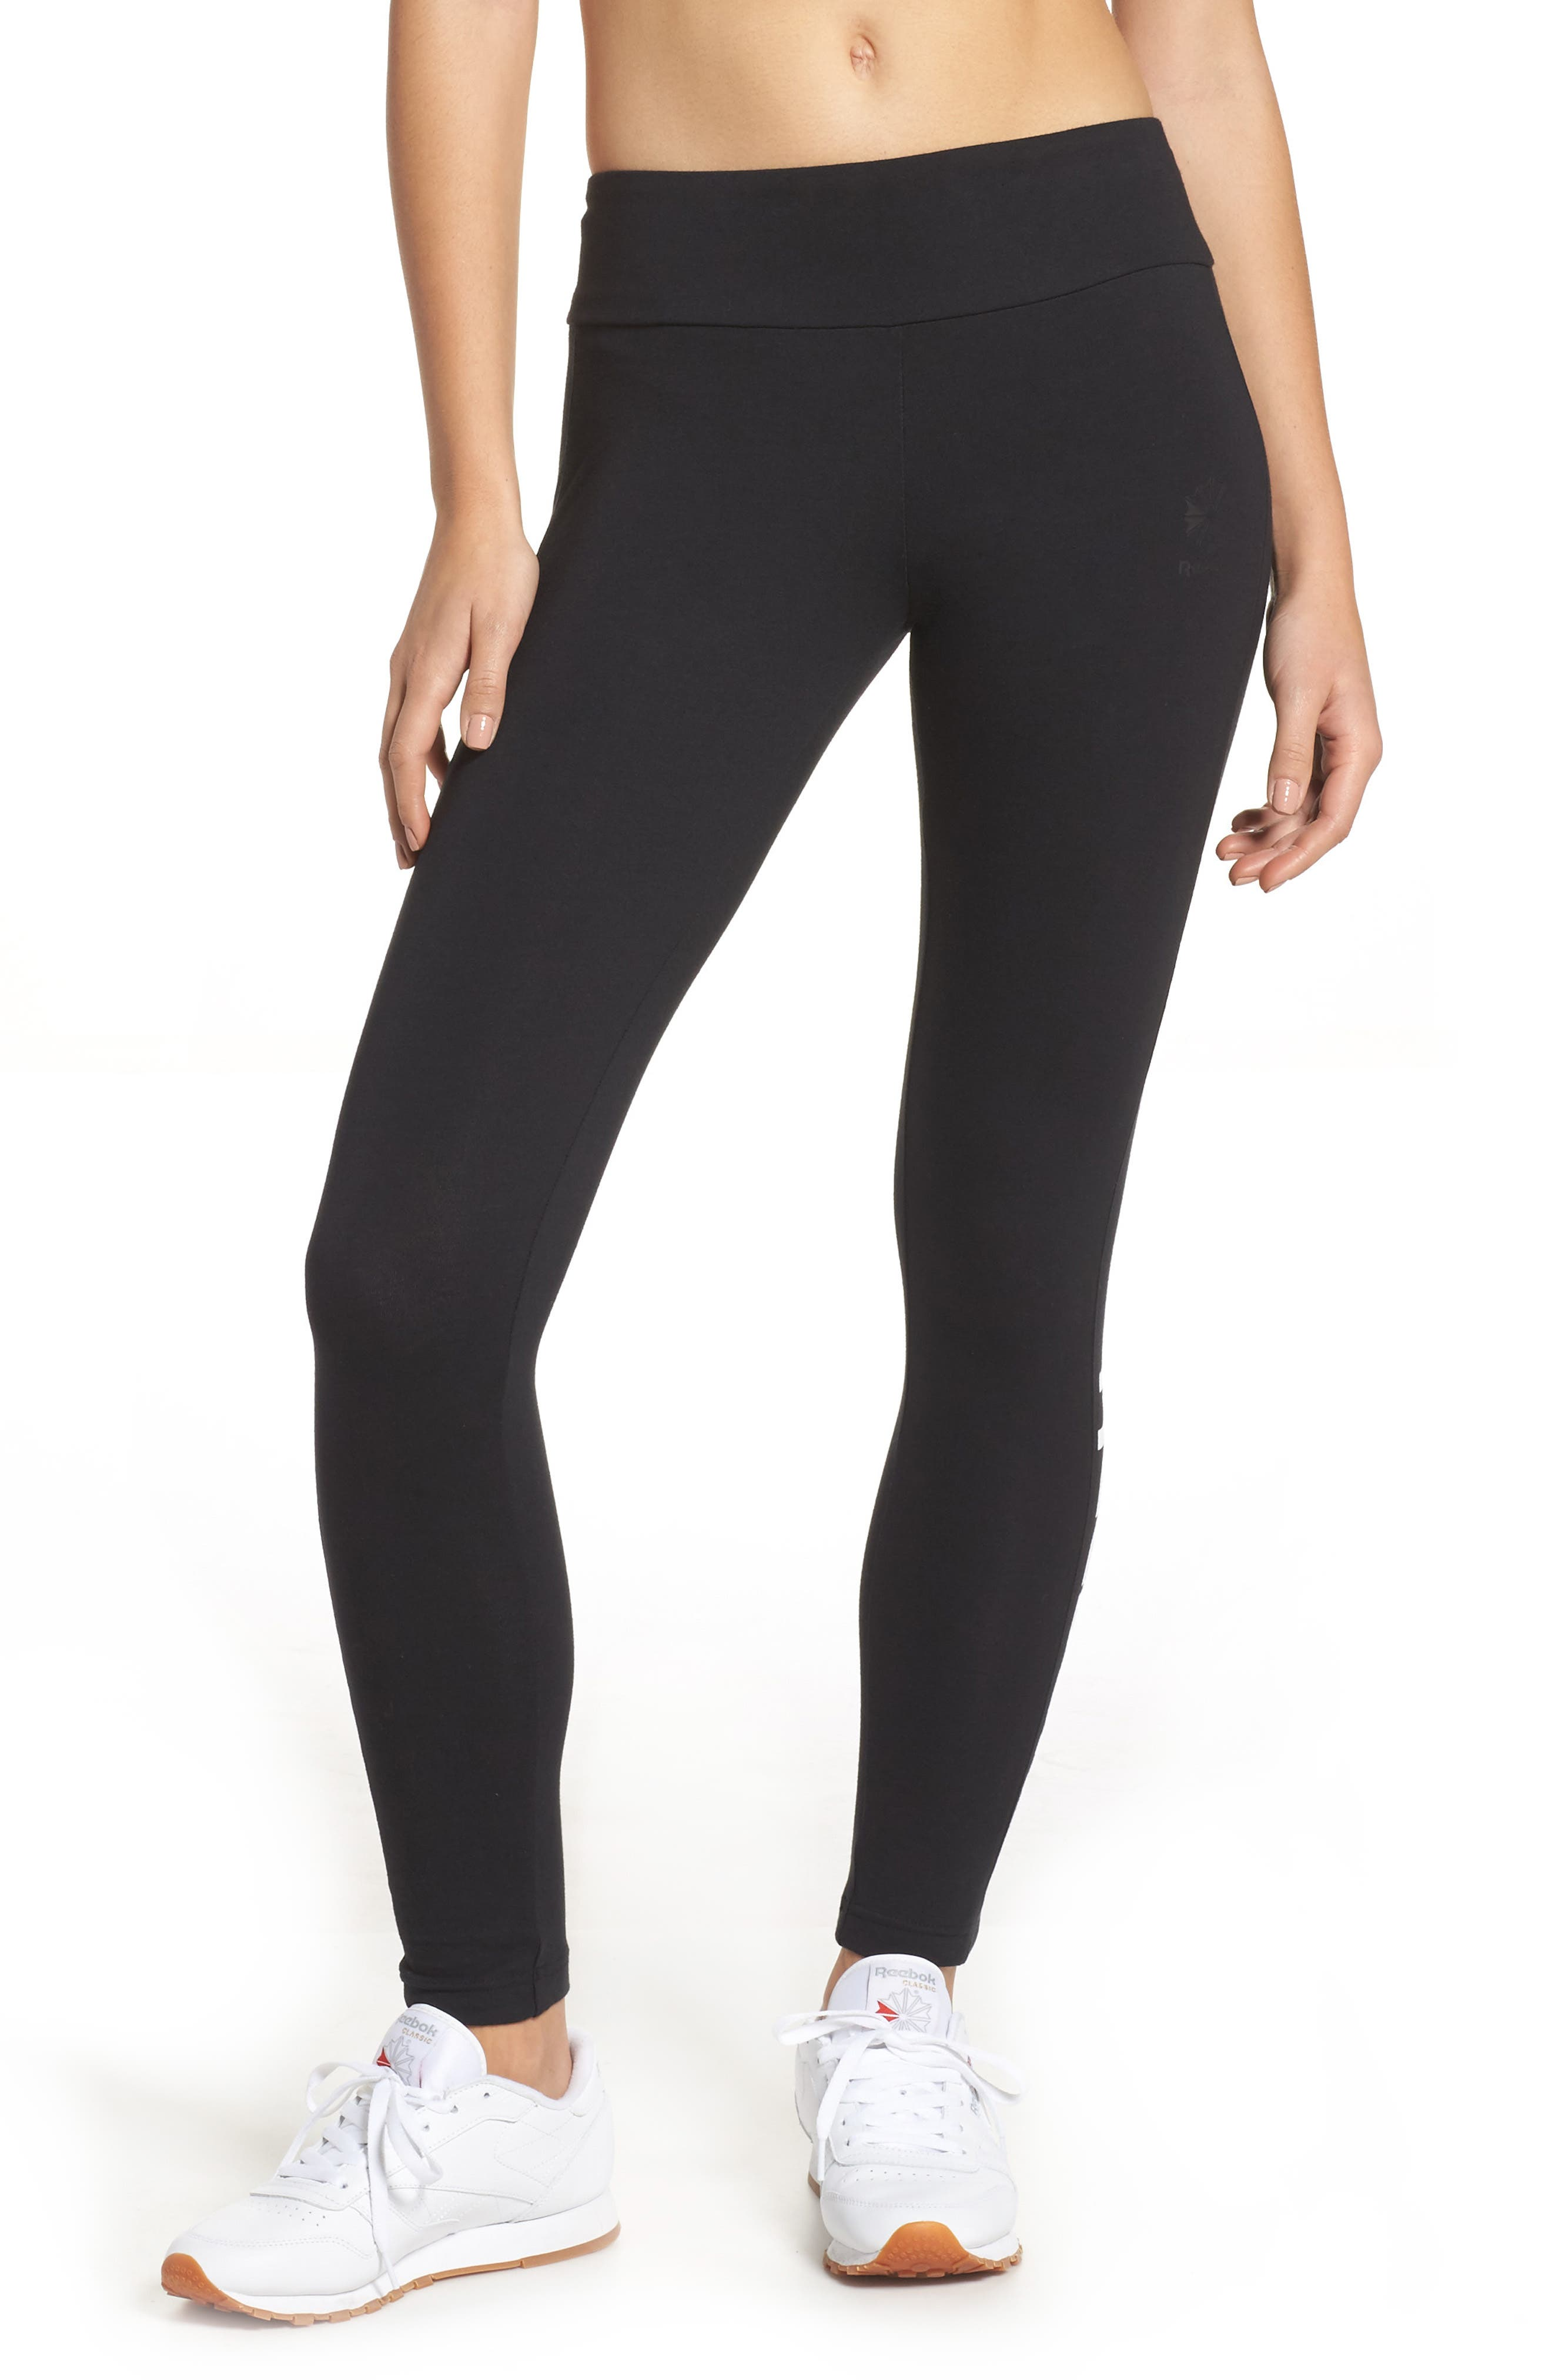 Reebok Classic Stretch Cotton Leggings